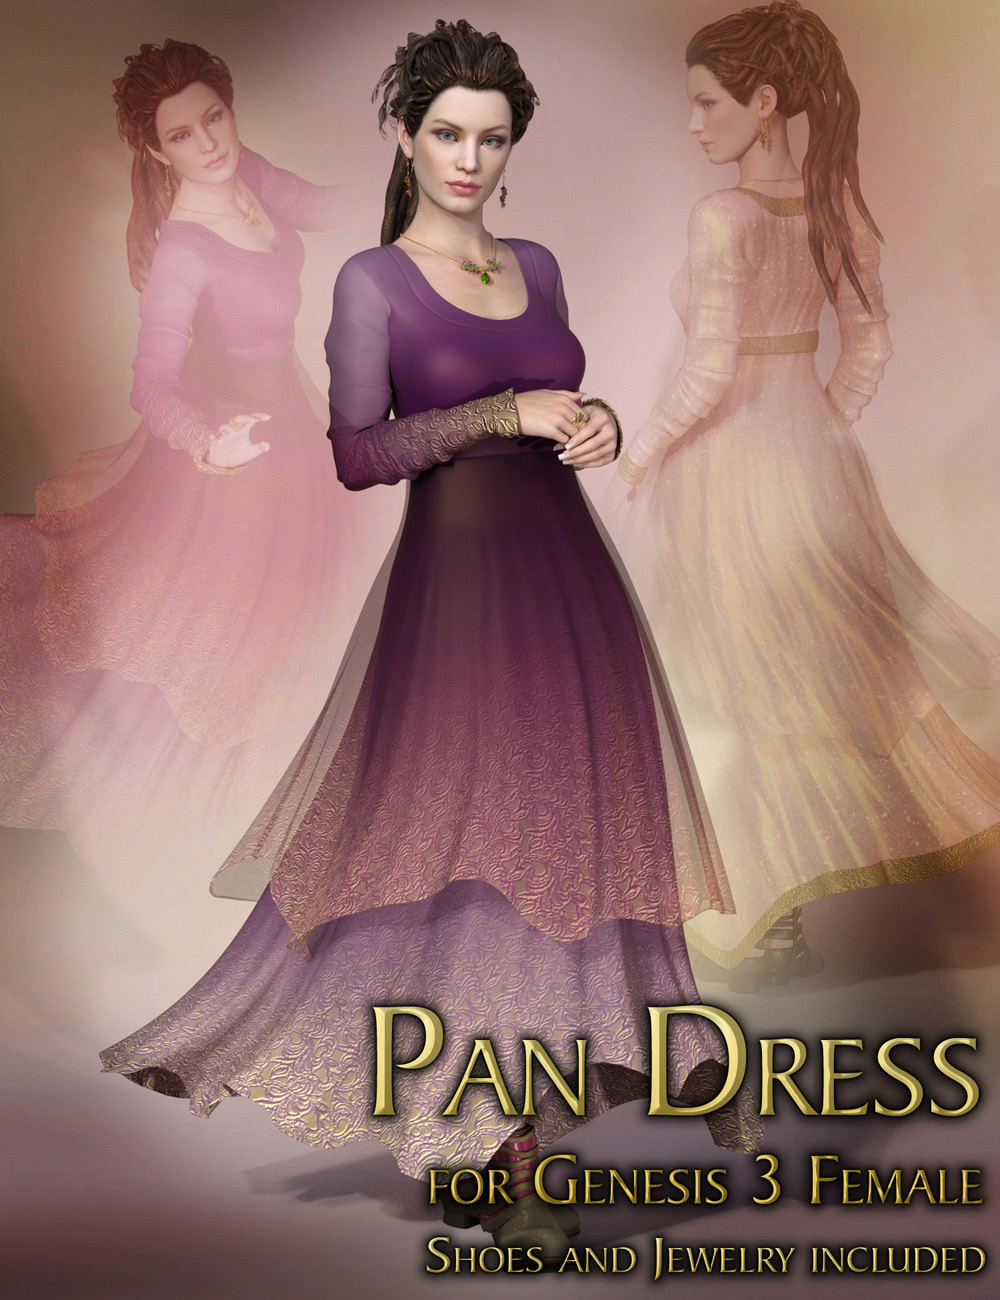 Pan Dress for Genesis 3 Female